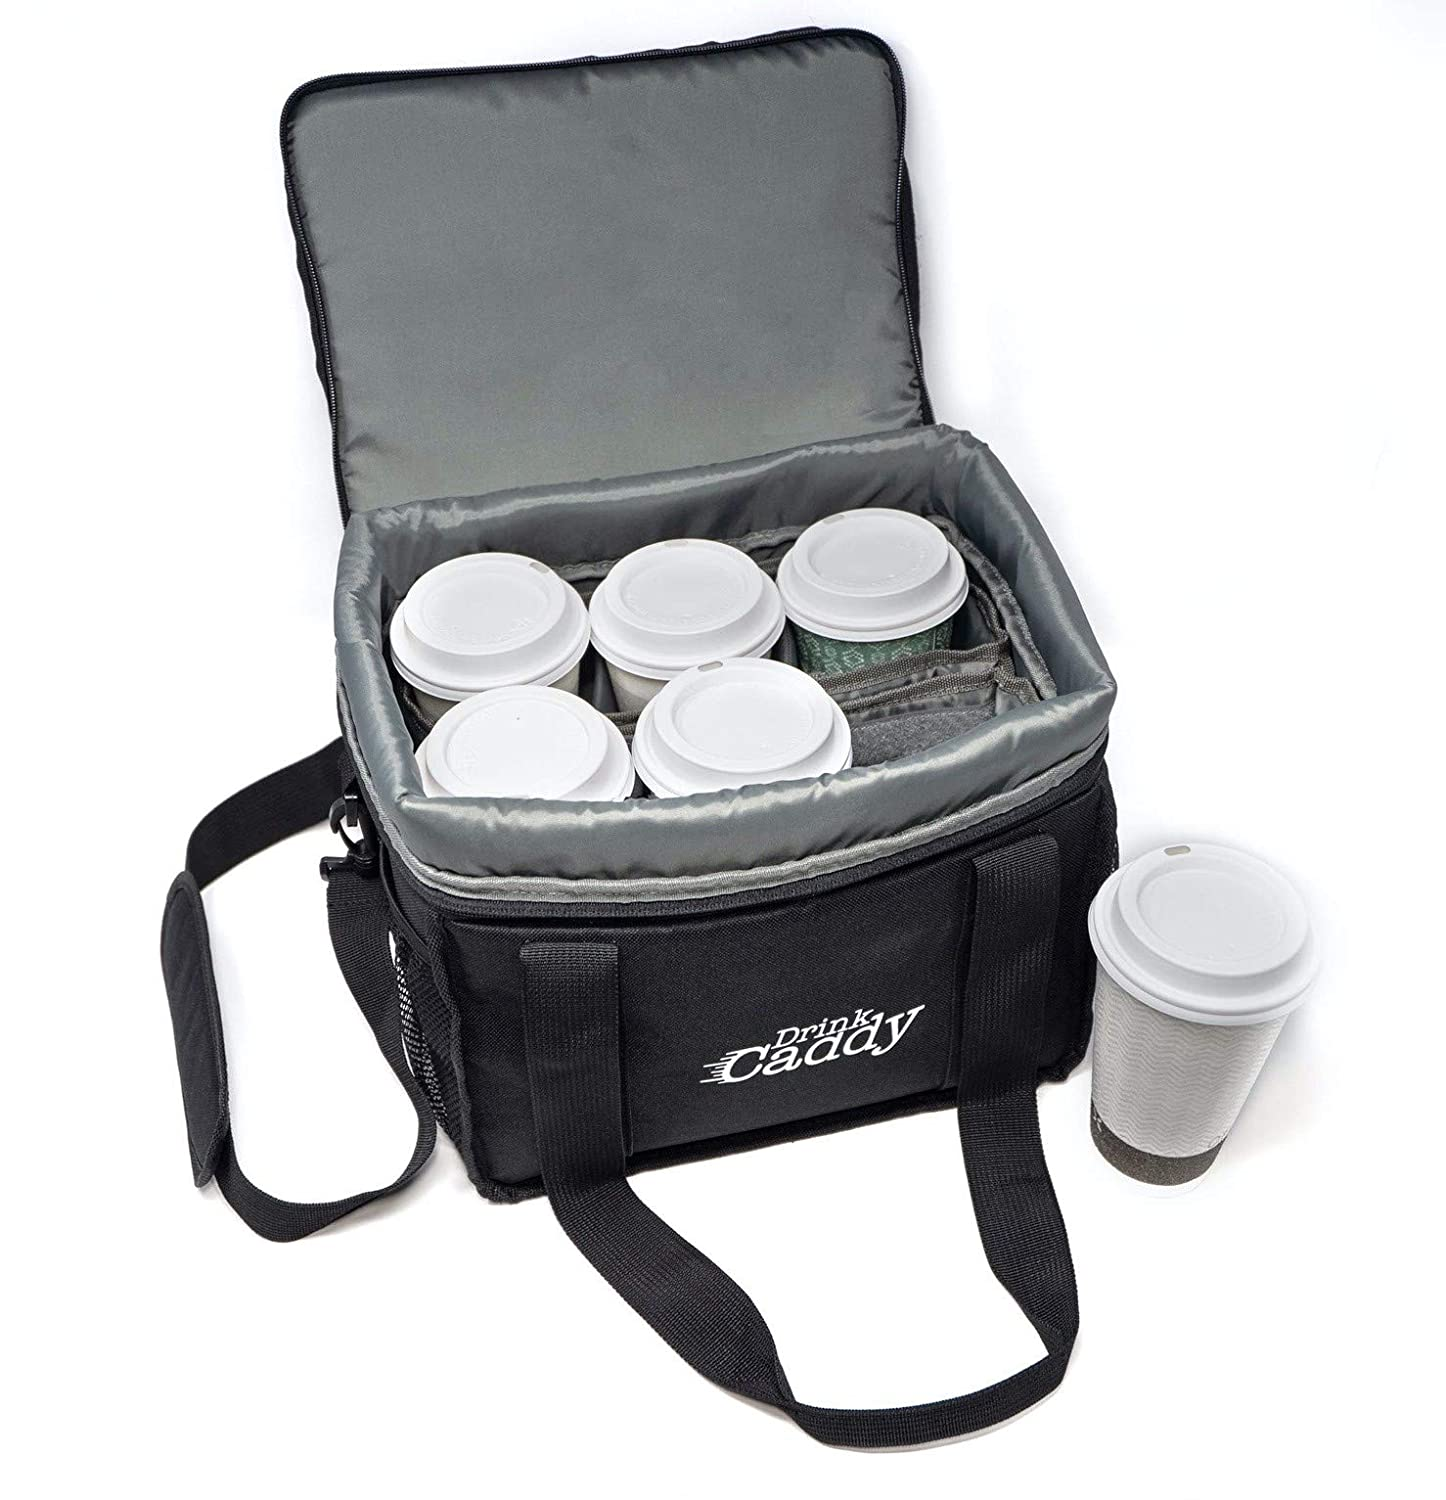 Drink Caddy Insulated Portable Drink Carrier - Reusable Coffee Cup Holder with Shoulder Strap Perfect for Food Delivery and Takeout - Easily Secures 6 Hot or Cold Beverages with adjustable height Zipper Closure.